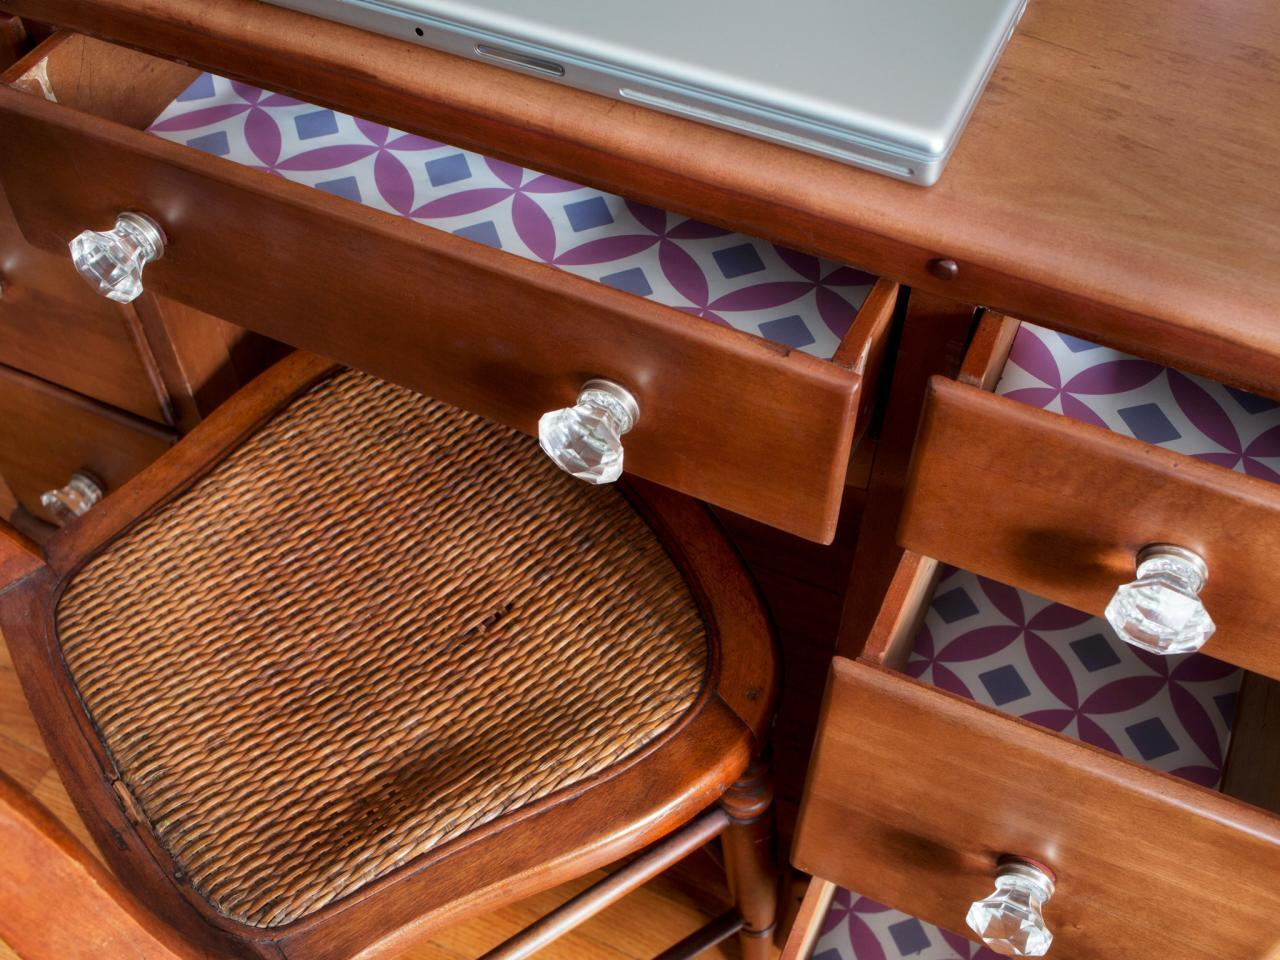 HGTV - wallpaper drawers